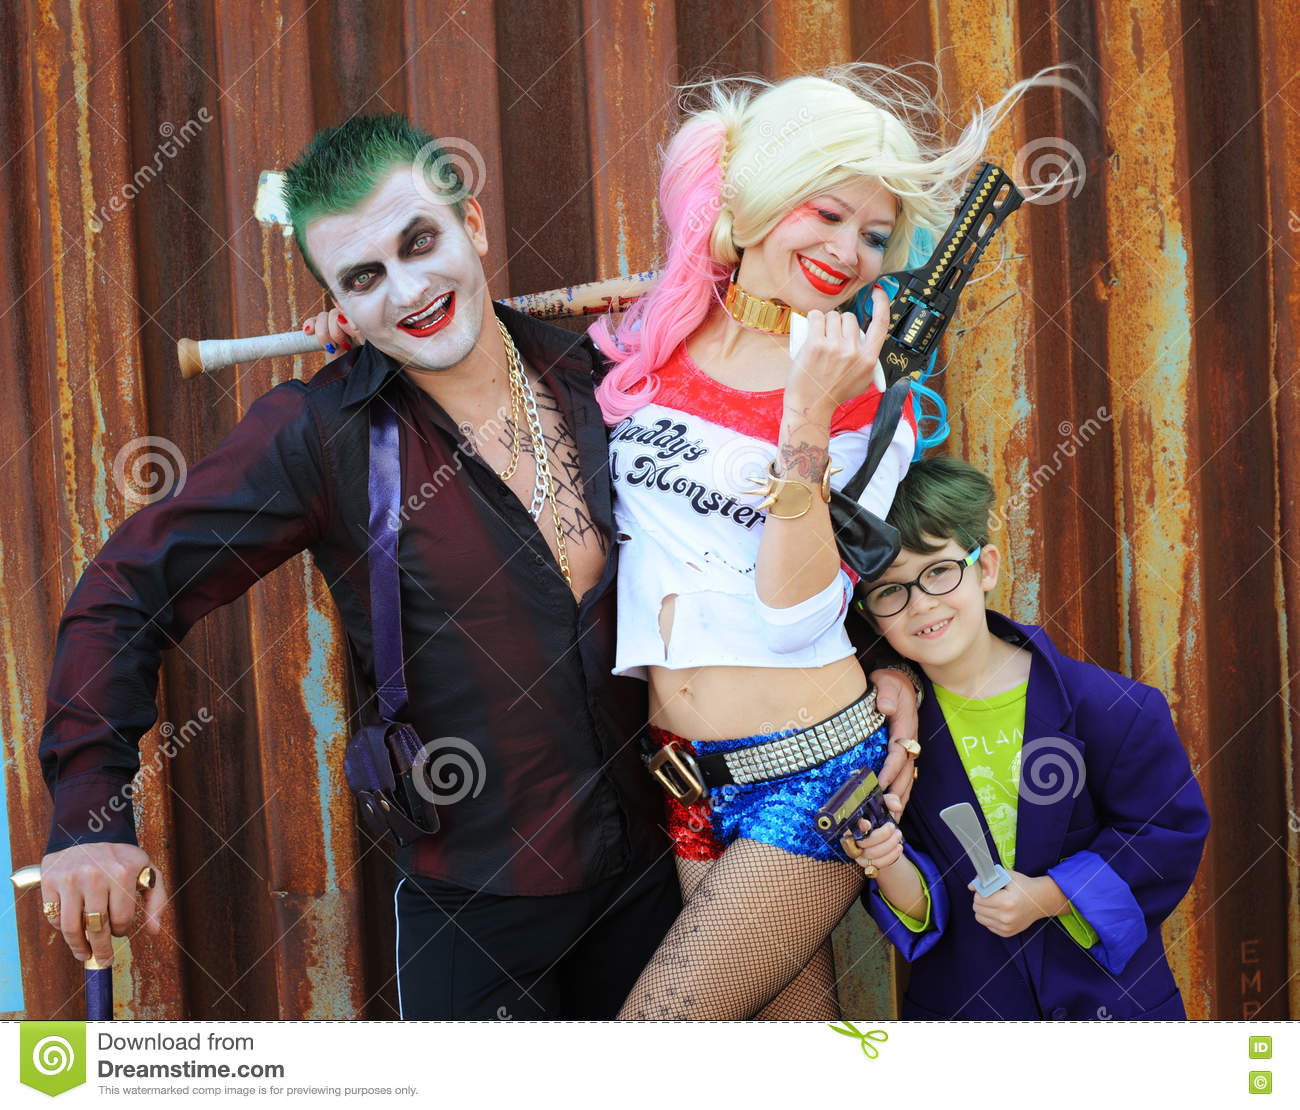 Download comp  sc 1 st  Dreamstime.com & Cosplayers In Harley Quinn Costume In Joker Costumes Editorial ...